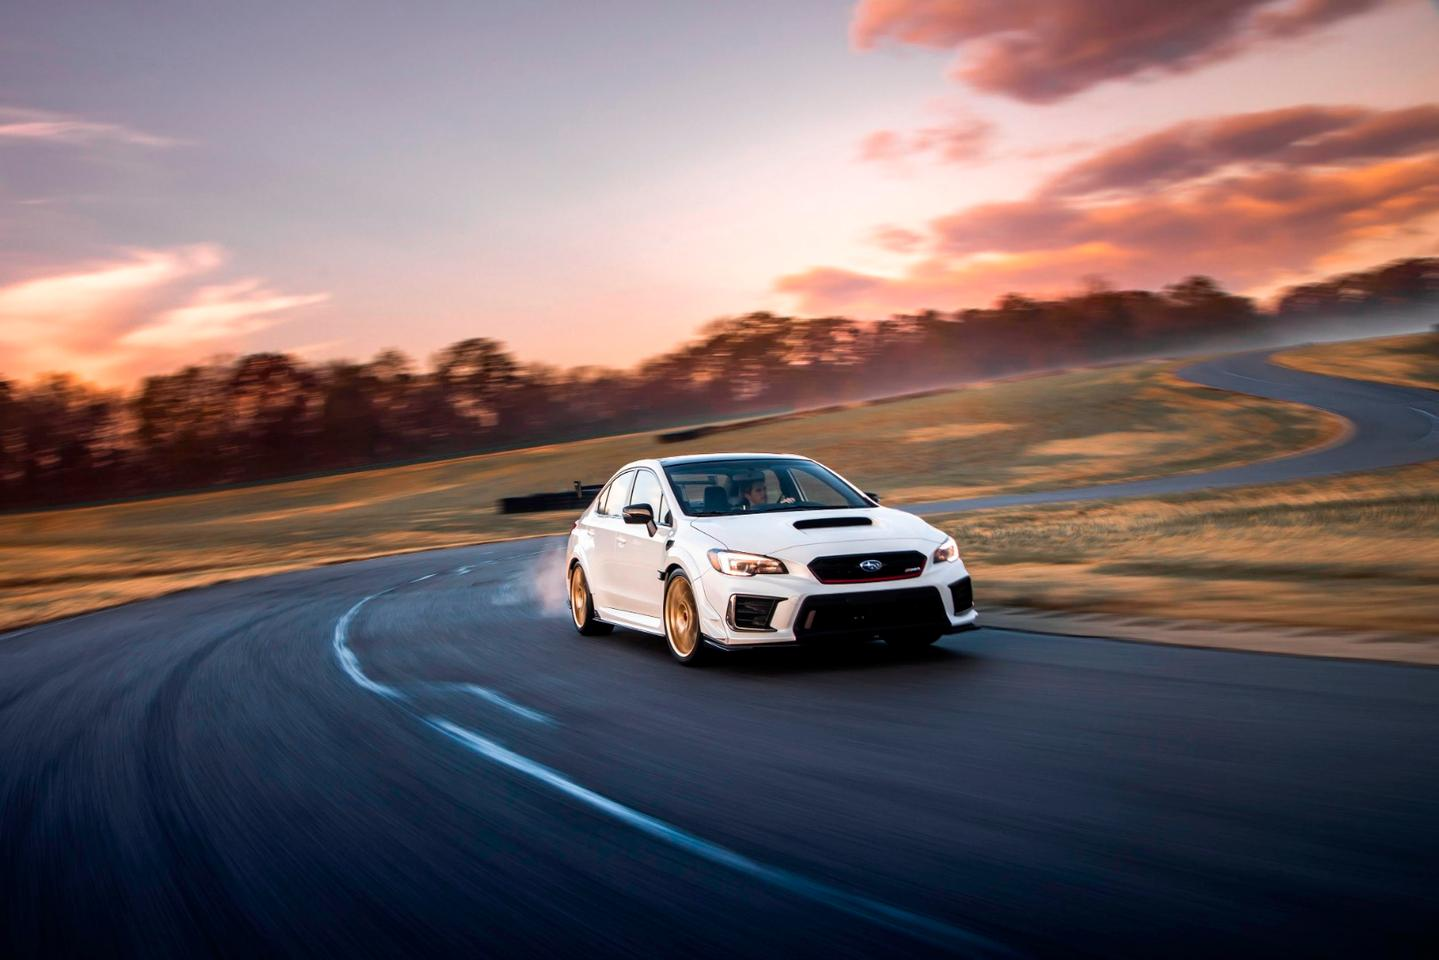 The S209 is based heavily on the STI-designed WRX STI Nurburgring Challenge racecar